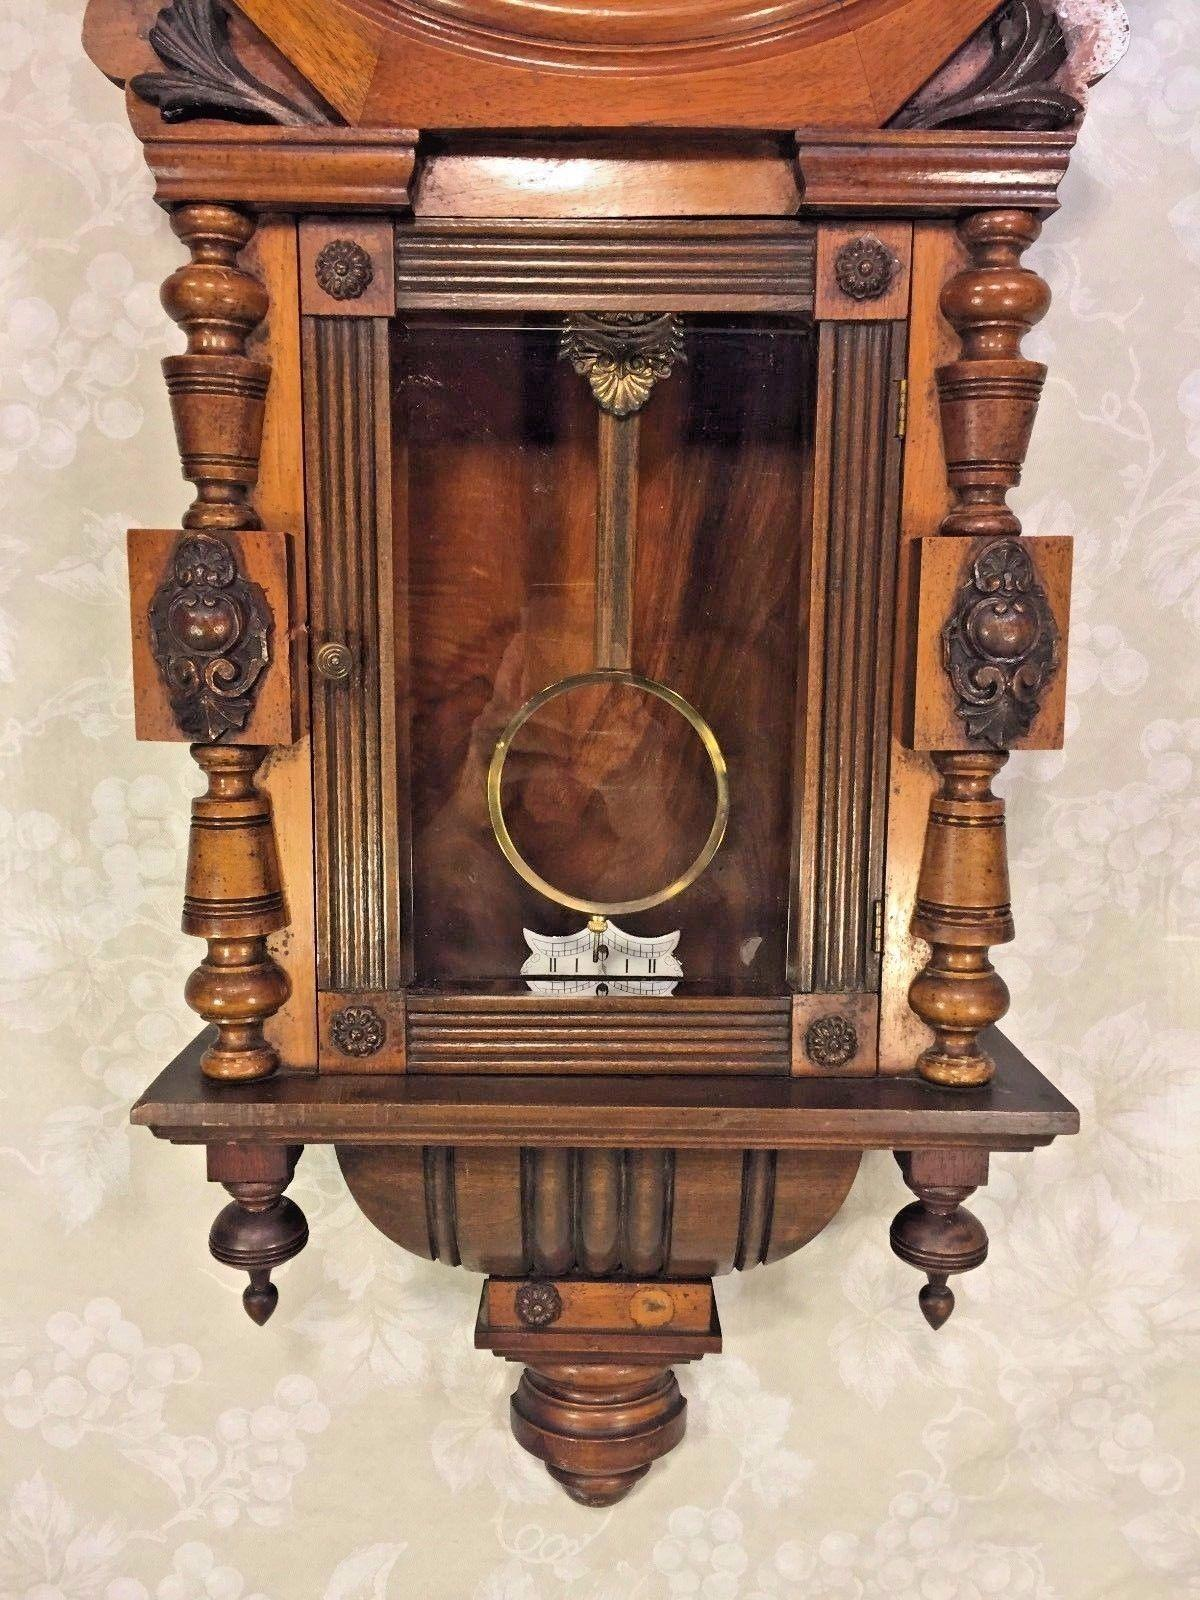 Antique gustav becker walnut calendar wall clock not running roll over large image to magnify click large image to zoom amipublicfo Image collections